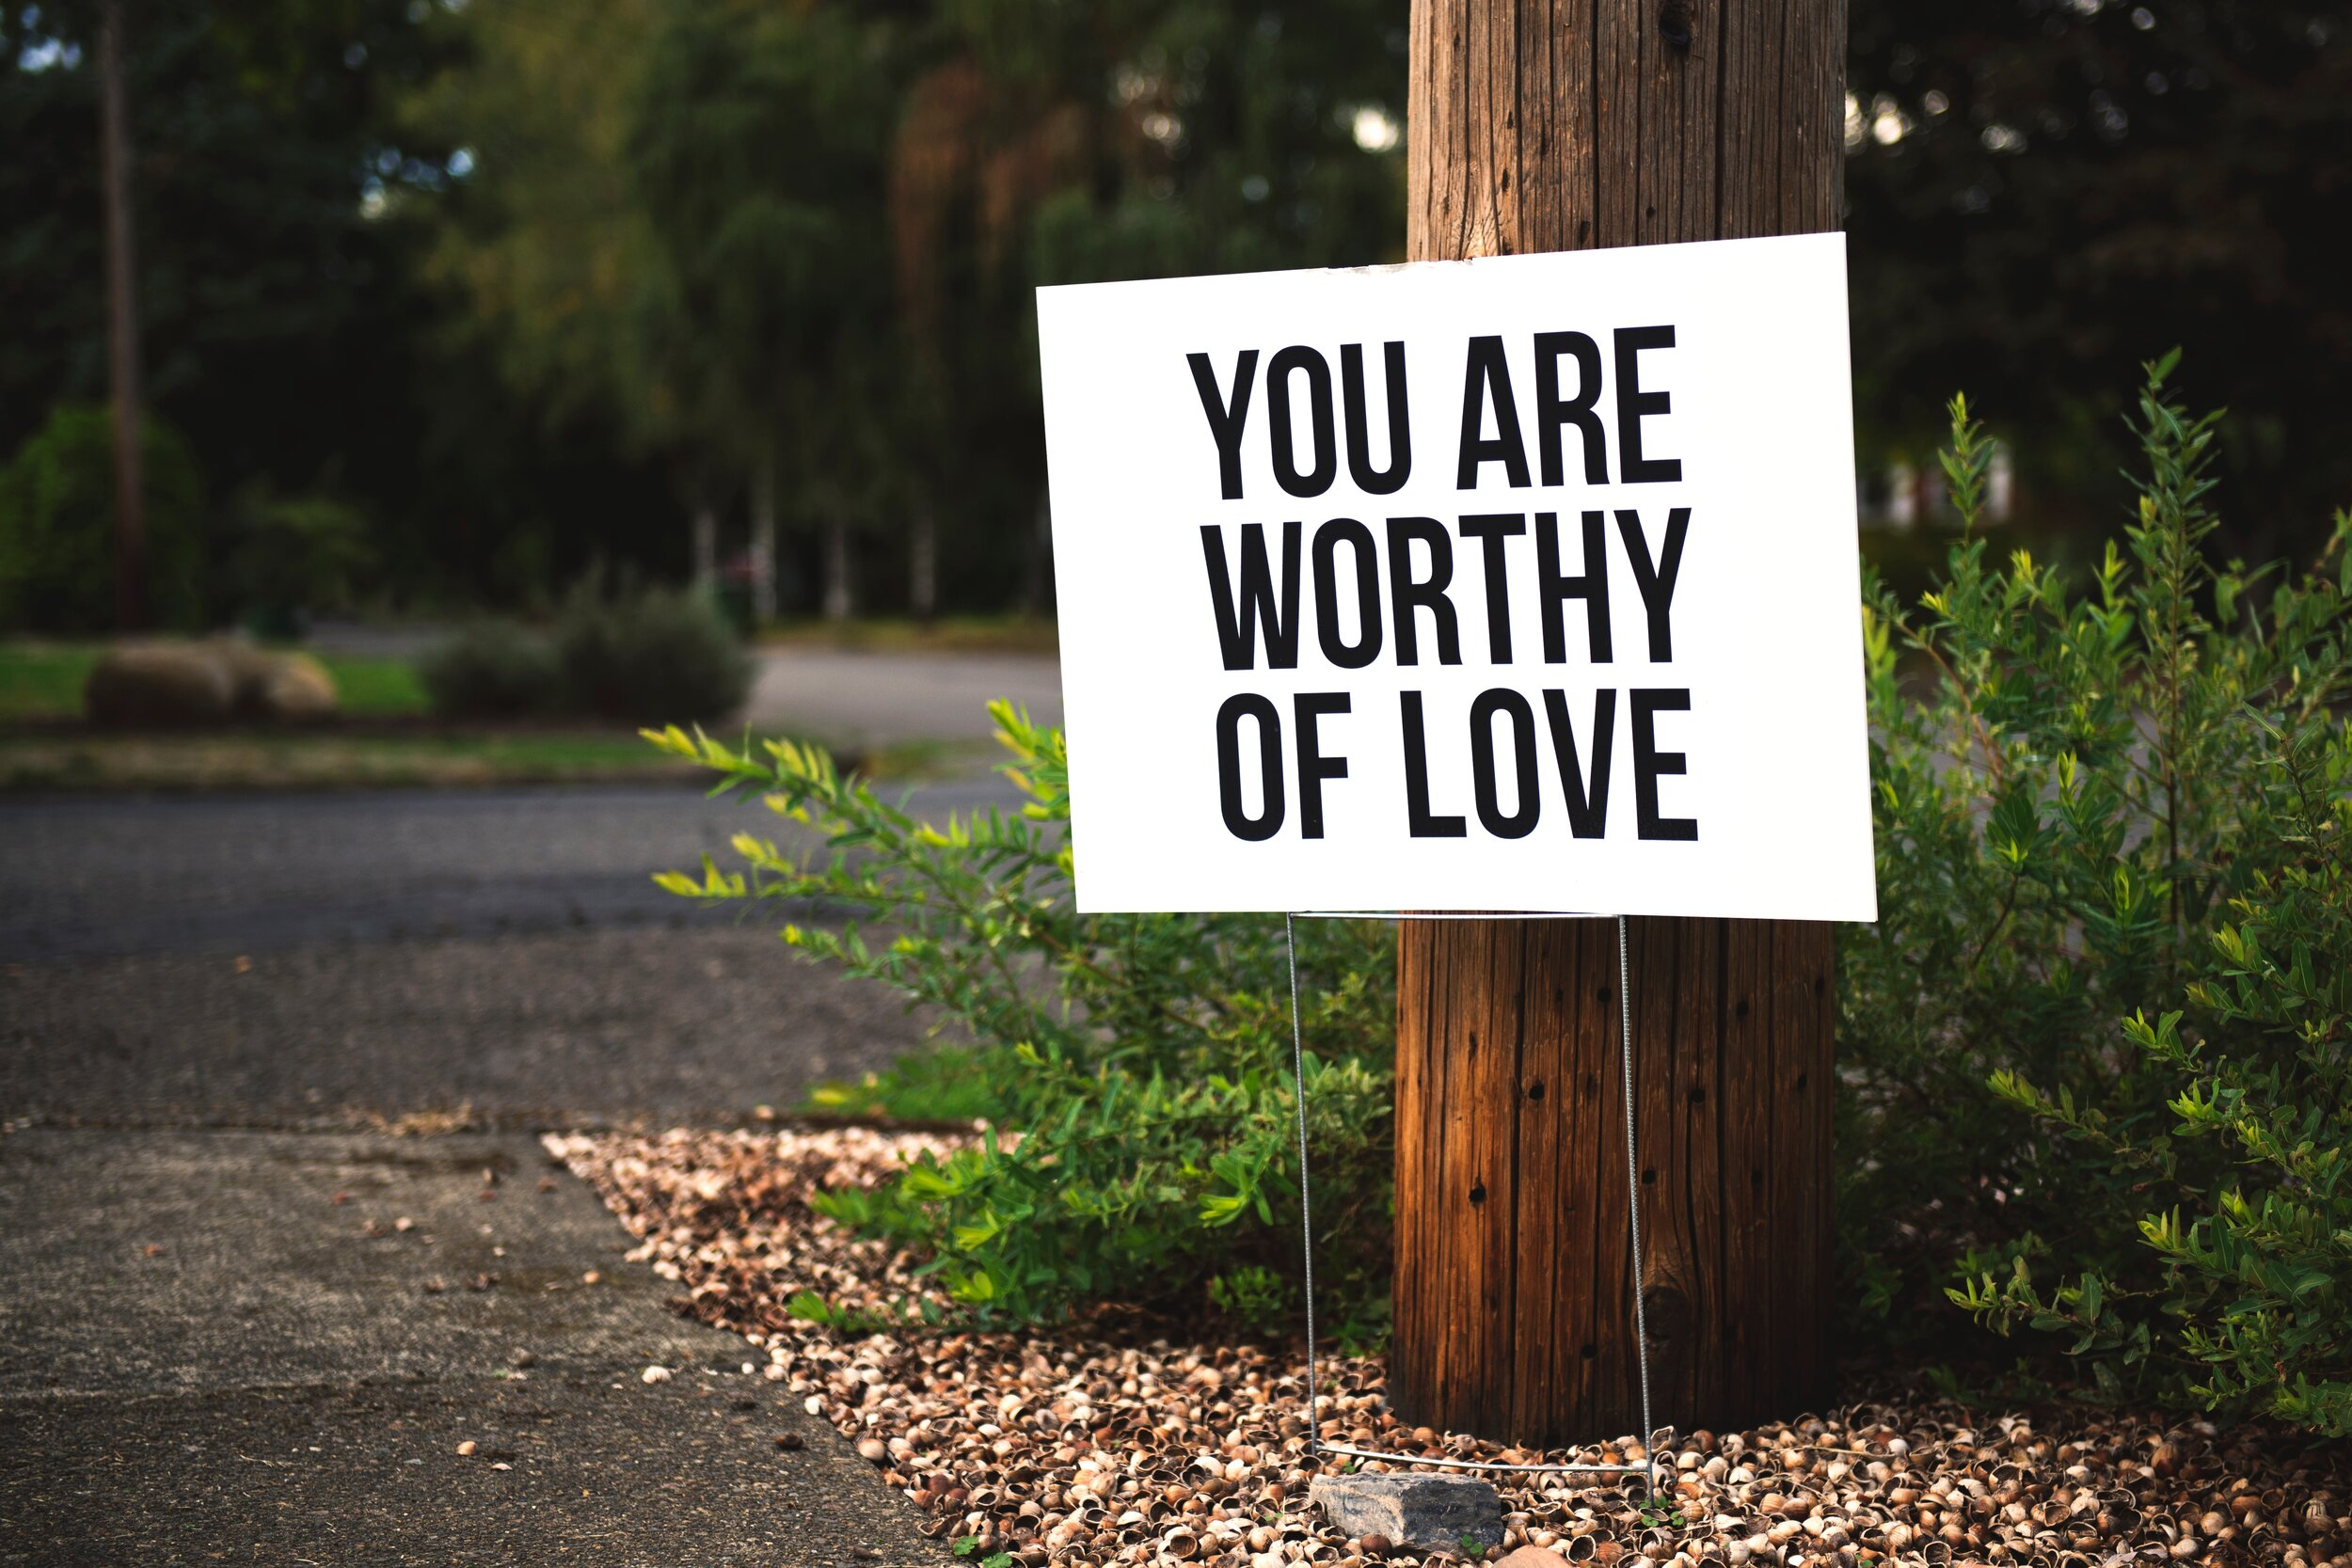 worthy-self care-self esteem-value-growth-loved-trauma-healing-hope-trauma therapy-individual therapy-anxiety-depression-eating disorders-guest blog-emily wacker-family therapy